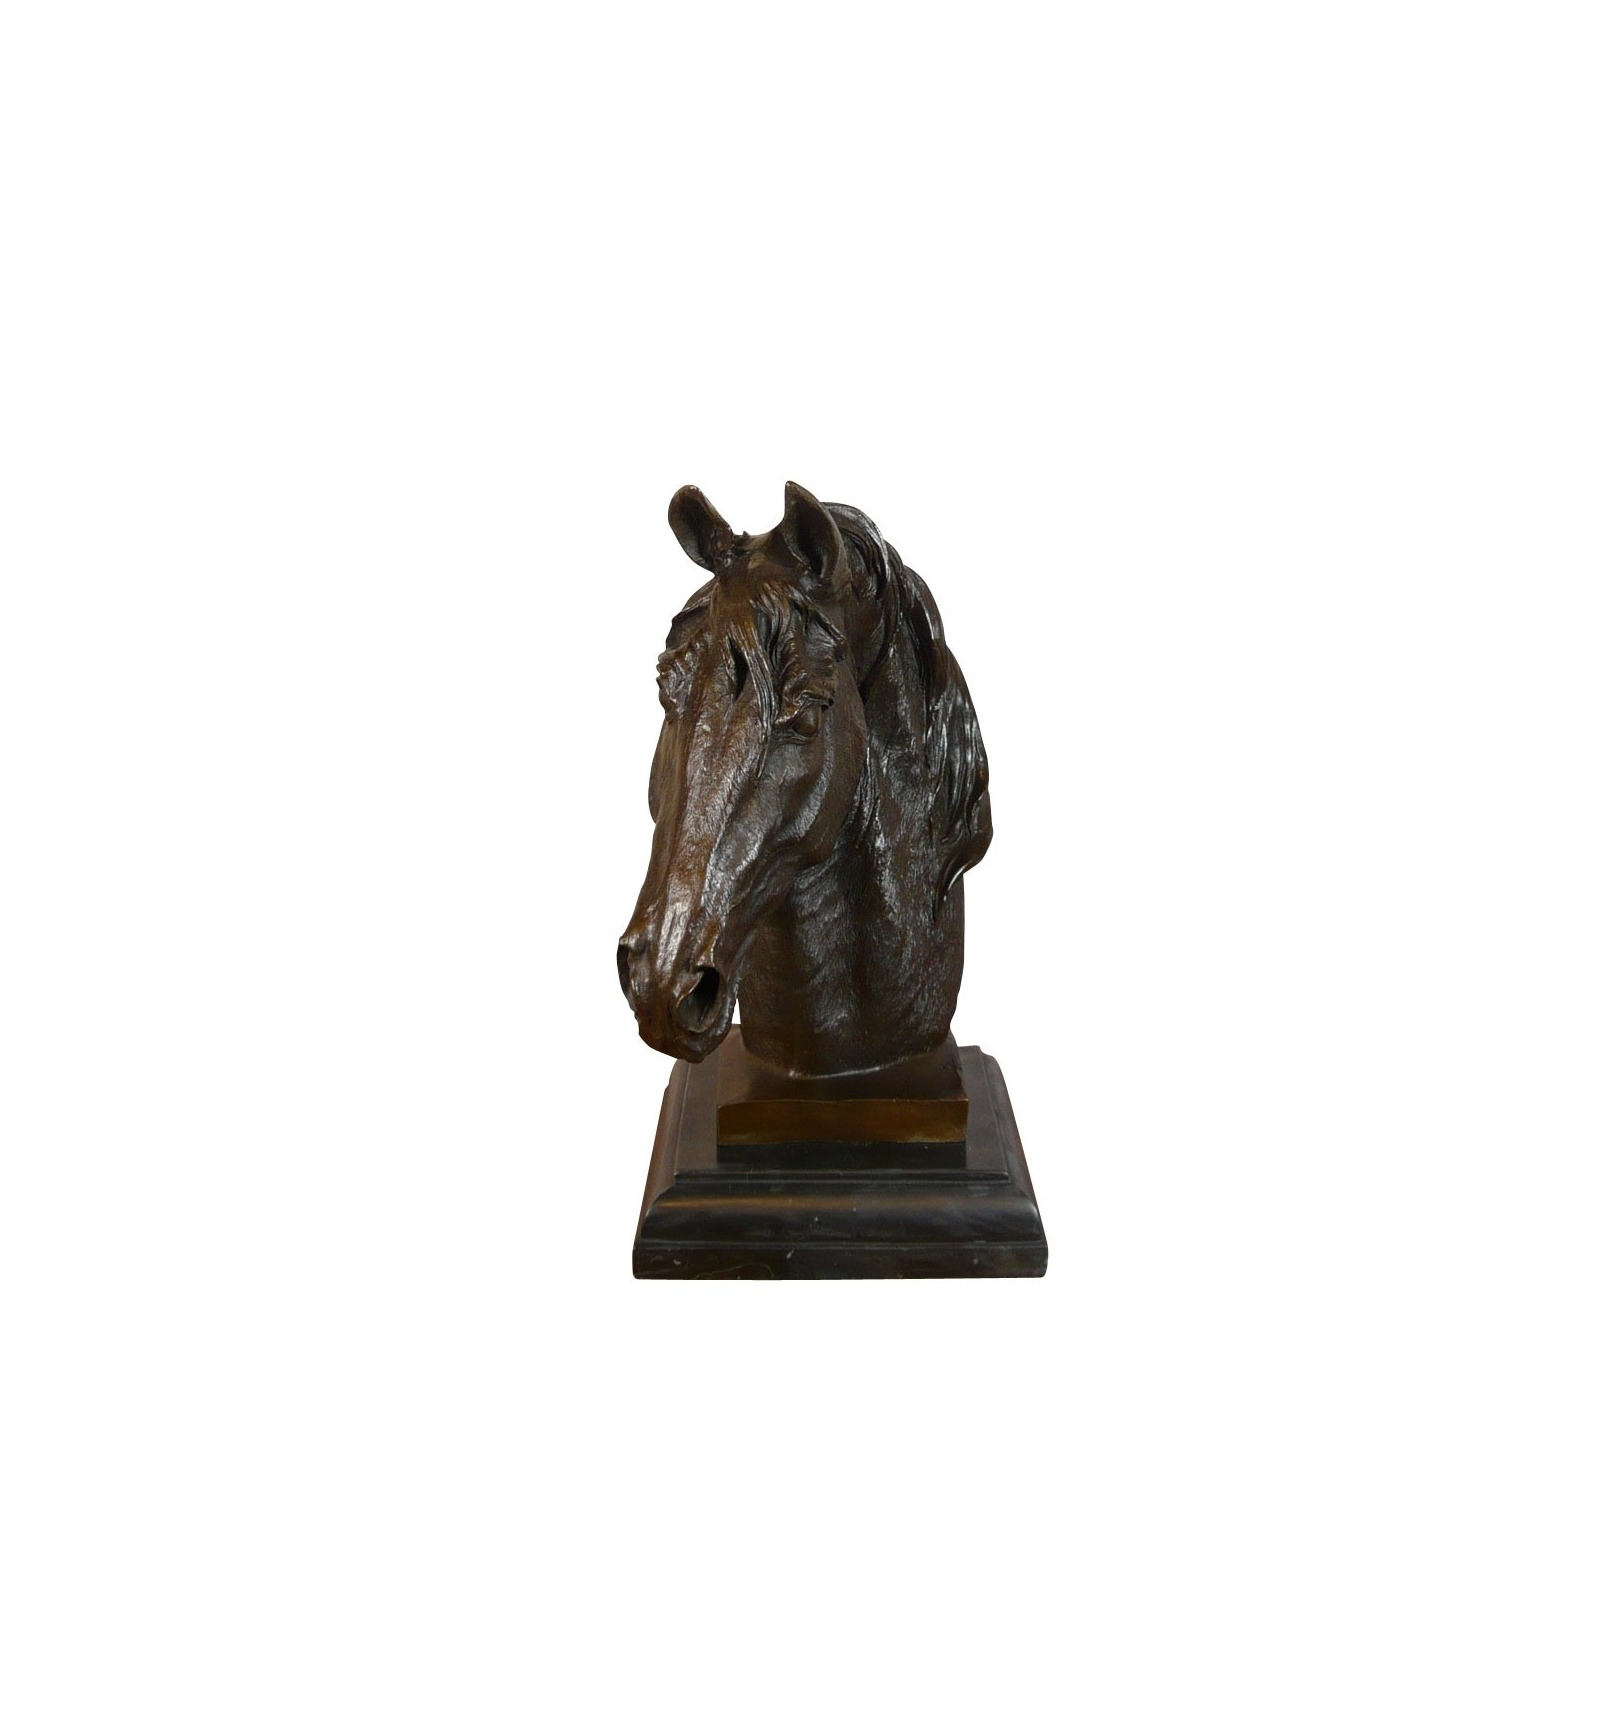 A Bronze Statue Of The Bust Of A Horse Sculpture